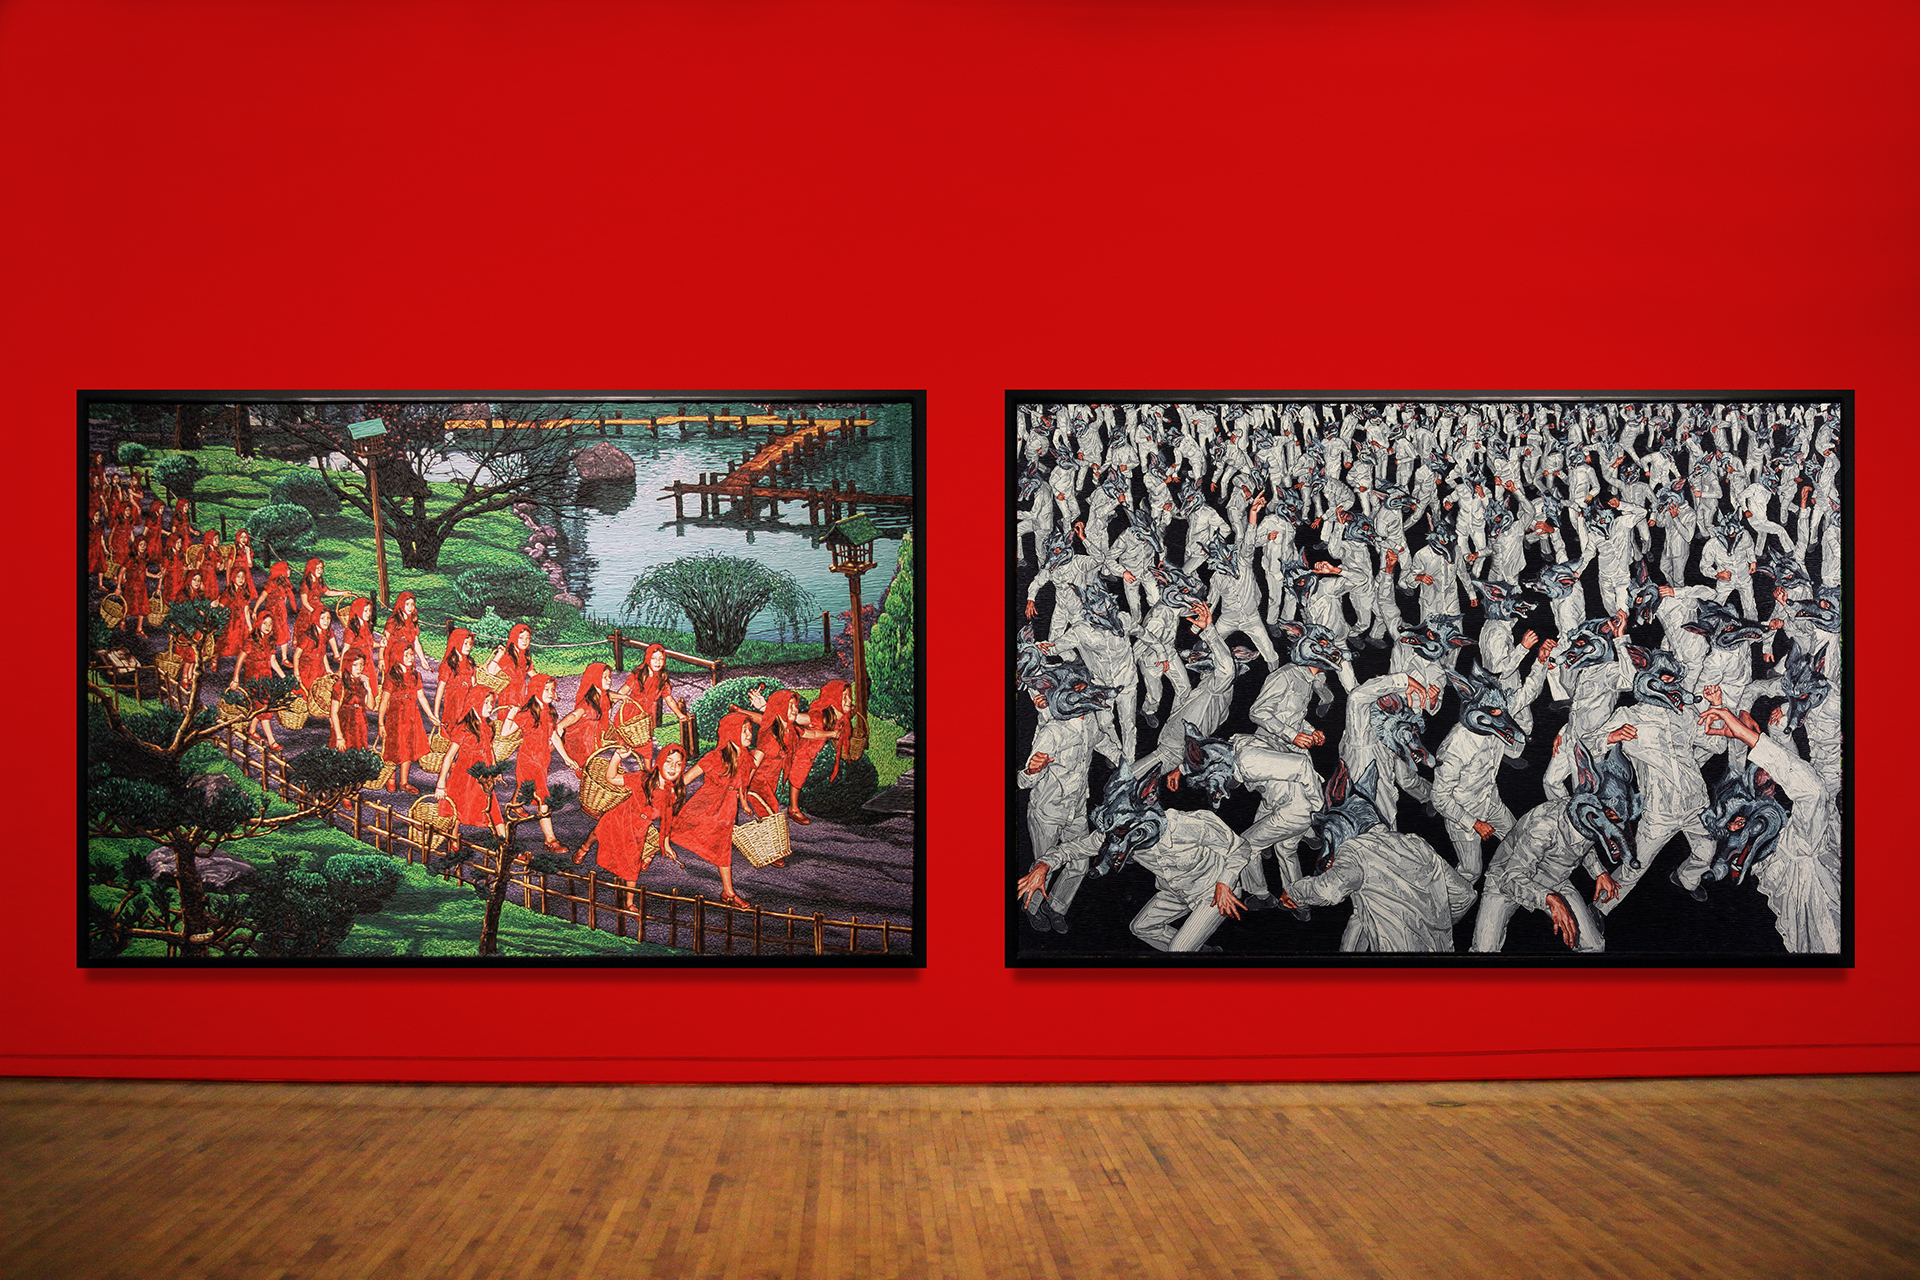 Images L to R:  Mondongo (Argentina)  32 Red riding hoods with empty basket without wolf , 2004. Plasticine on wood panel. 78 3/4 x 118 1/2 in. Courtesy of Track 16 Gallery. Mondongo (Argentina)  Dancing with myself , 2006-2007. Plasticine on wood. 78 3/4 x 118 1/8 in. Courtesy of Track 16 Gallery.